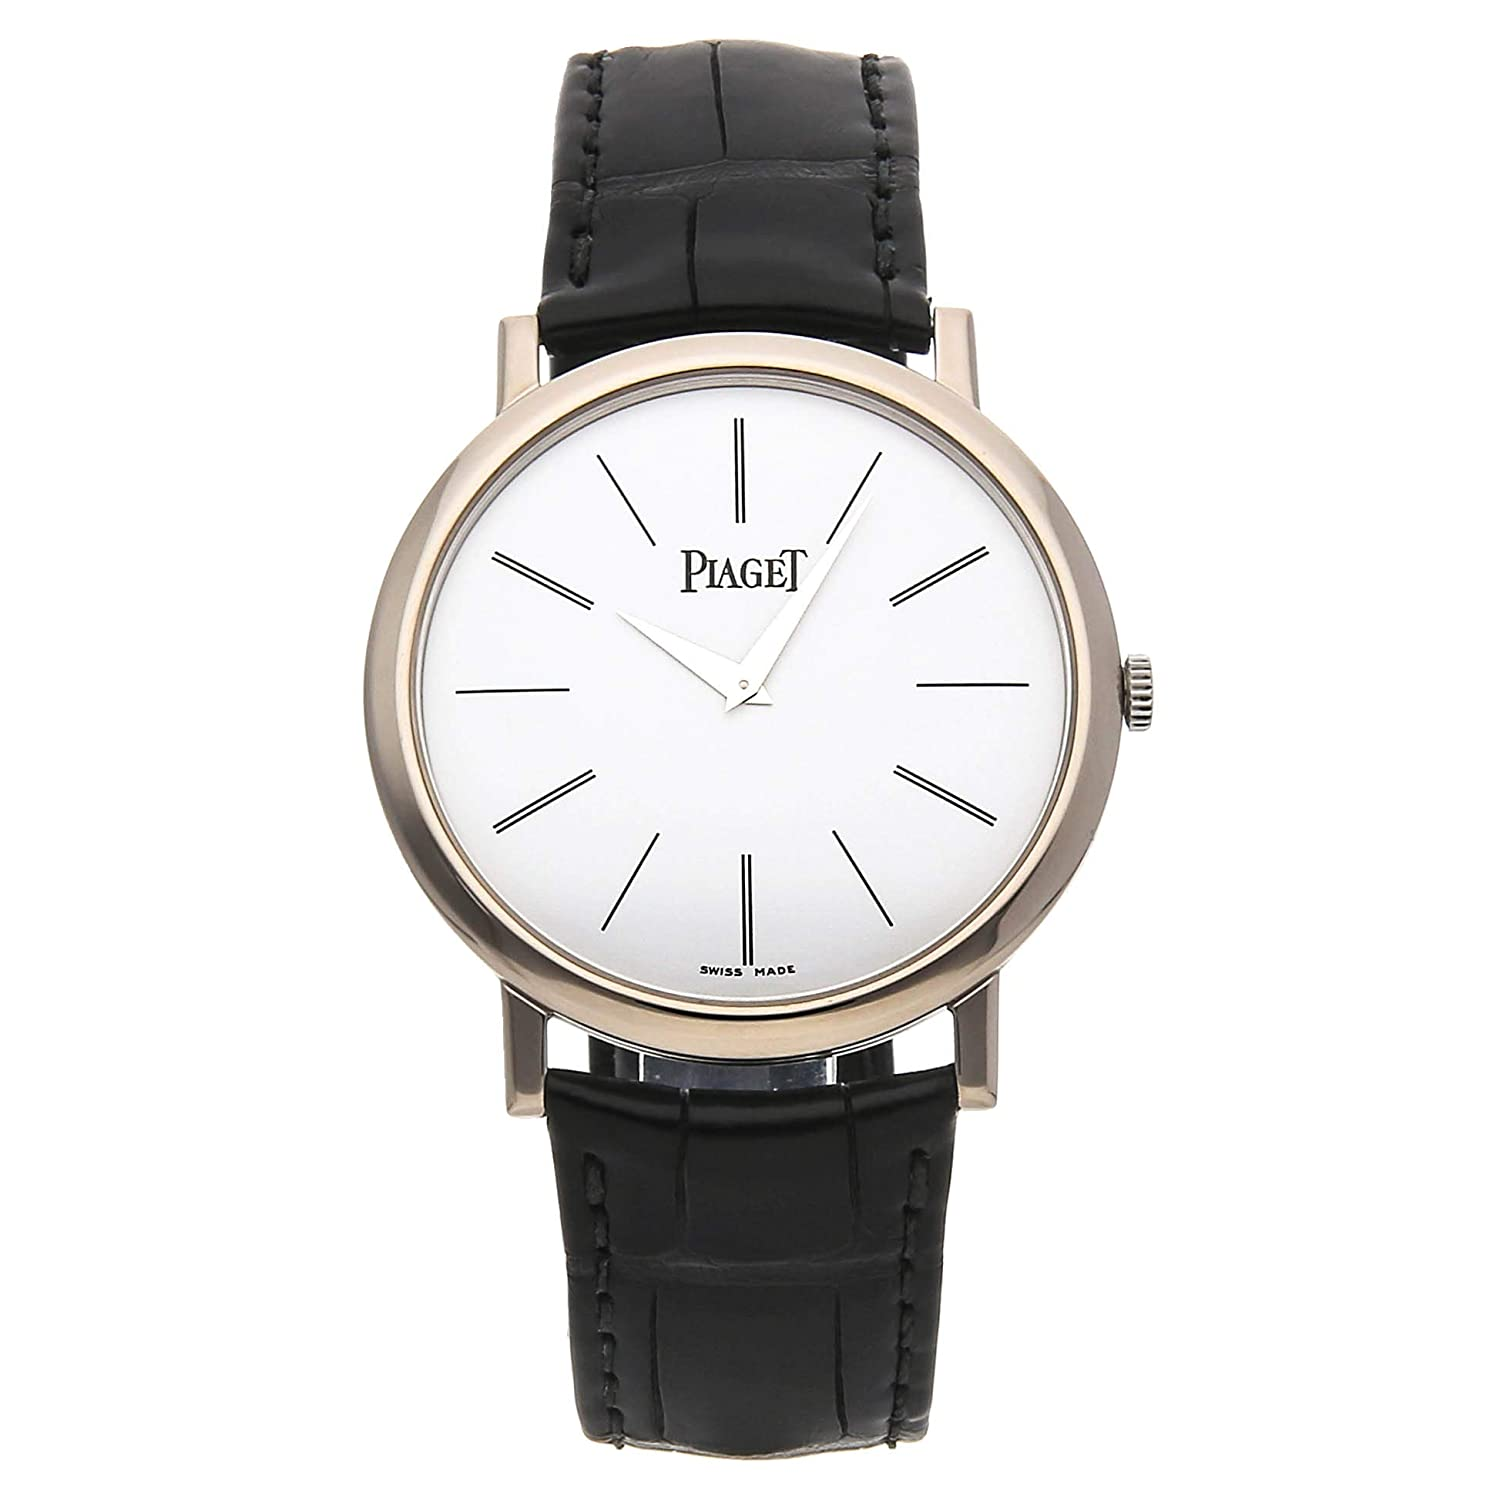 b35b1f1bacb Amazon.com  Piaget Altiplano Mechanical (Hand-Winding) White Dial Mens Watch  G0A29112 (Certified Pre-Owned)  Piaget  Watches